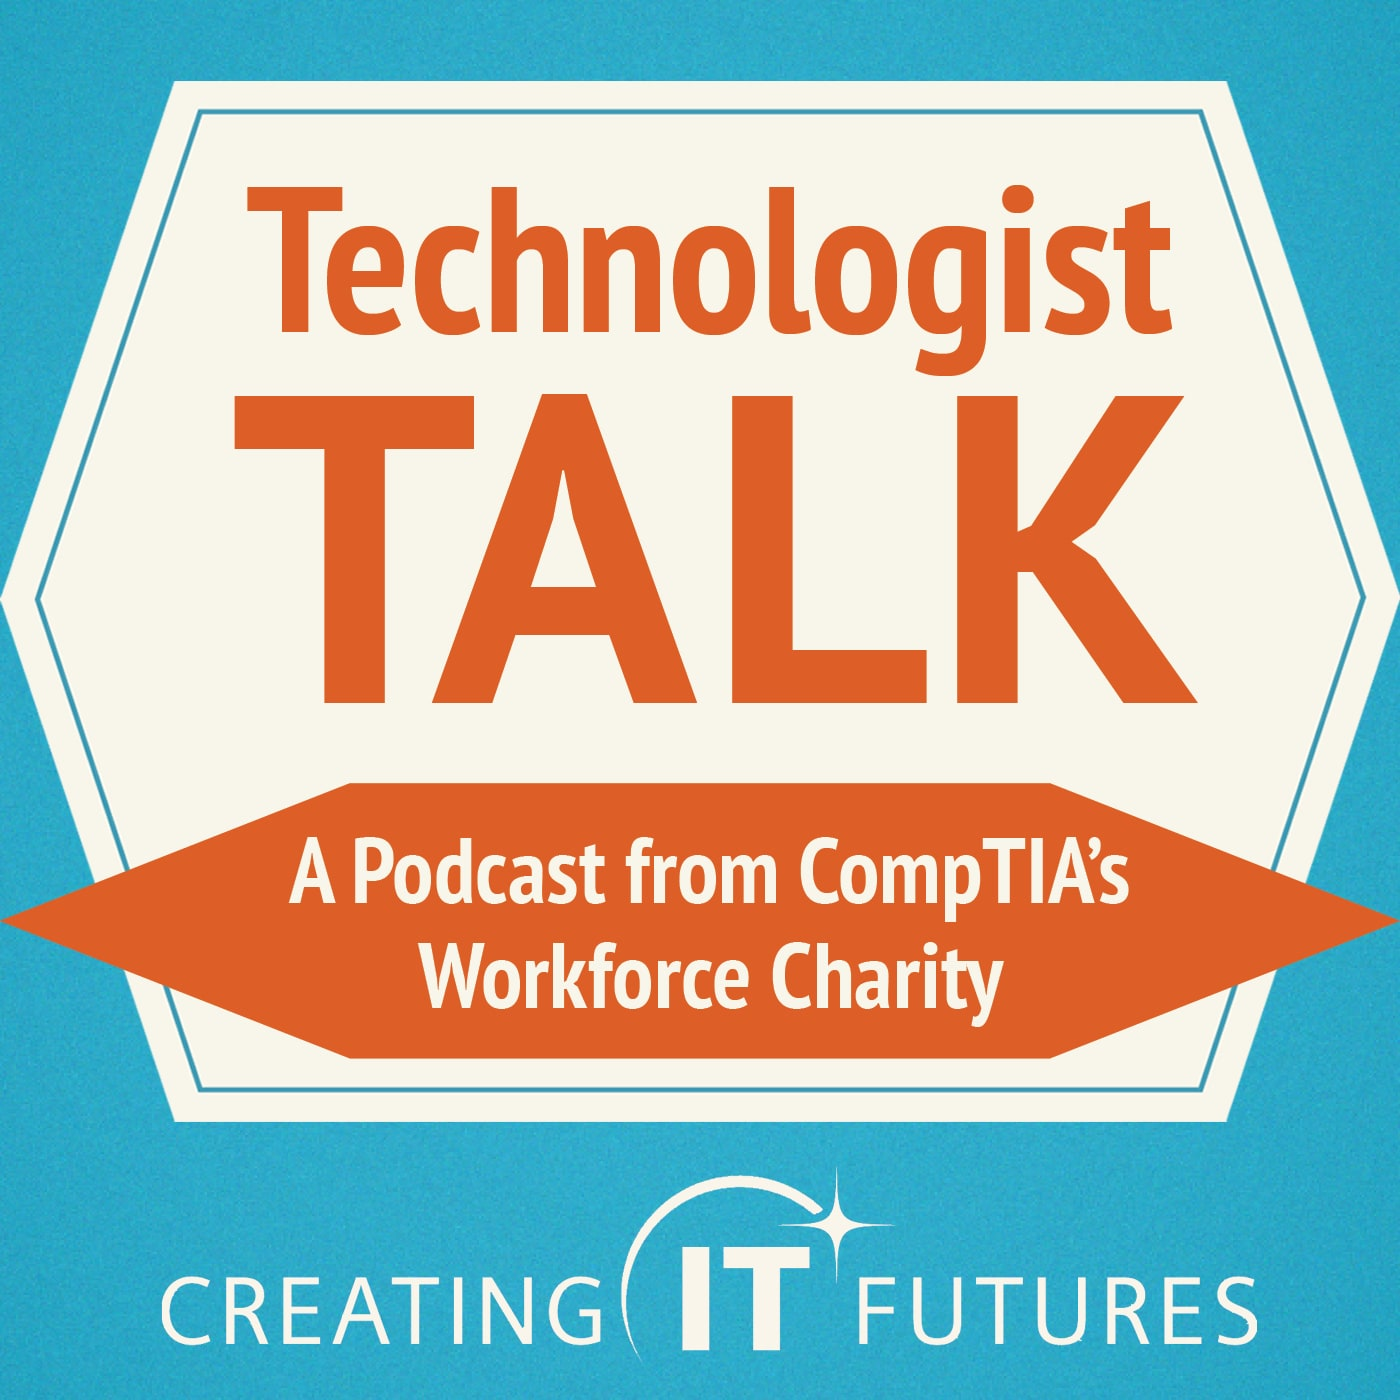 Technologist Talk